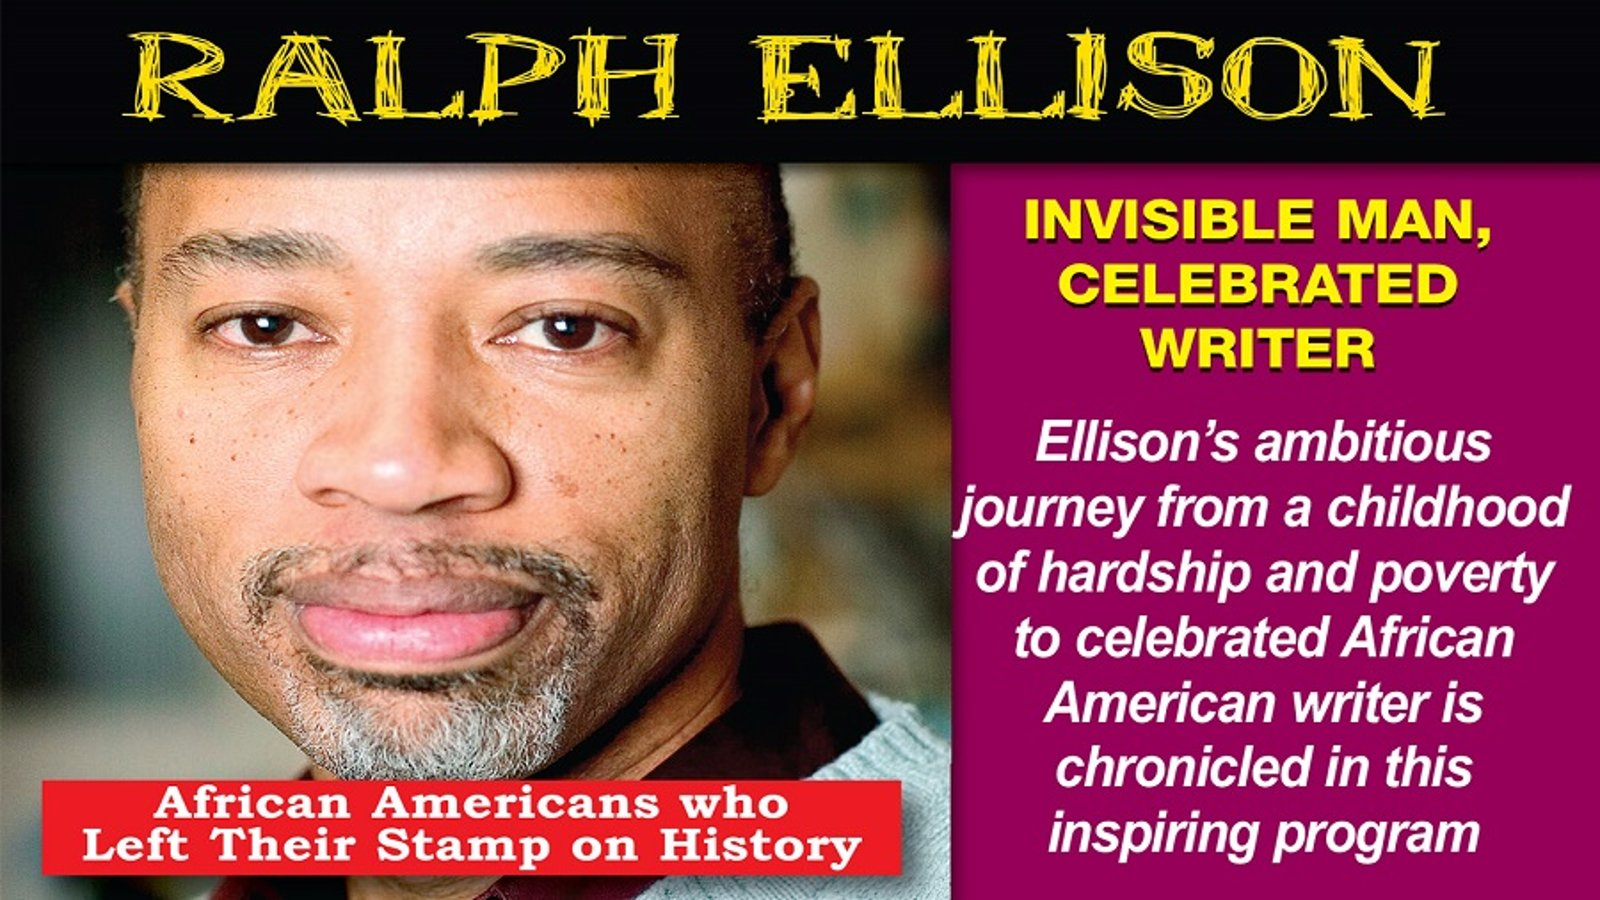 Ralph Ellison: Invisible Man, Celebrated Writer